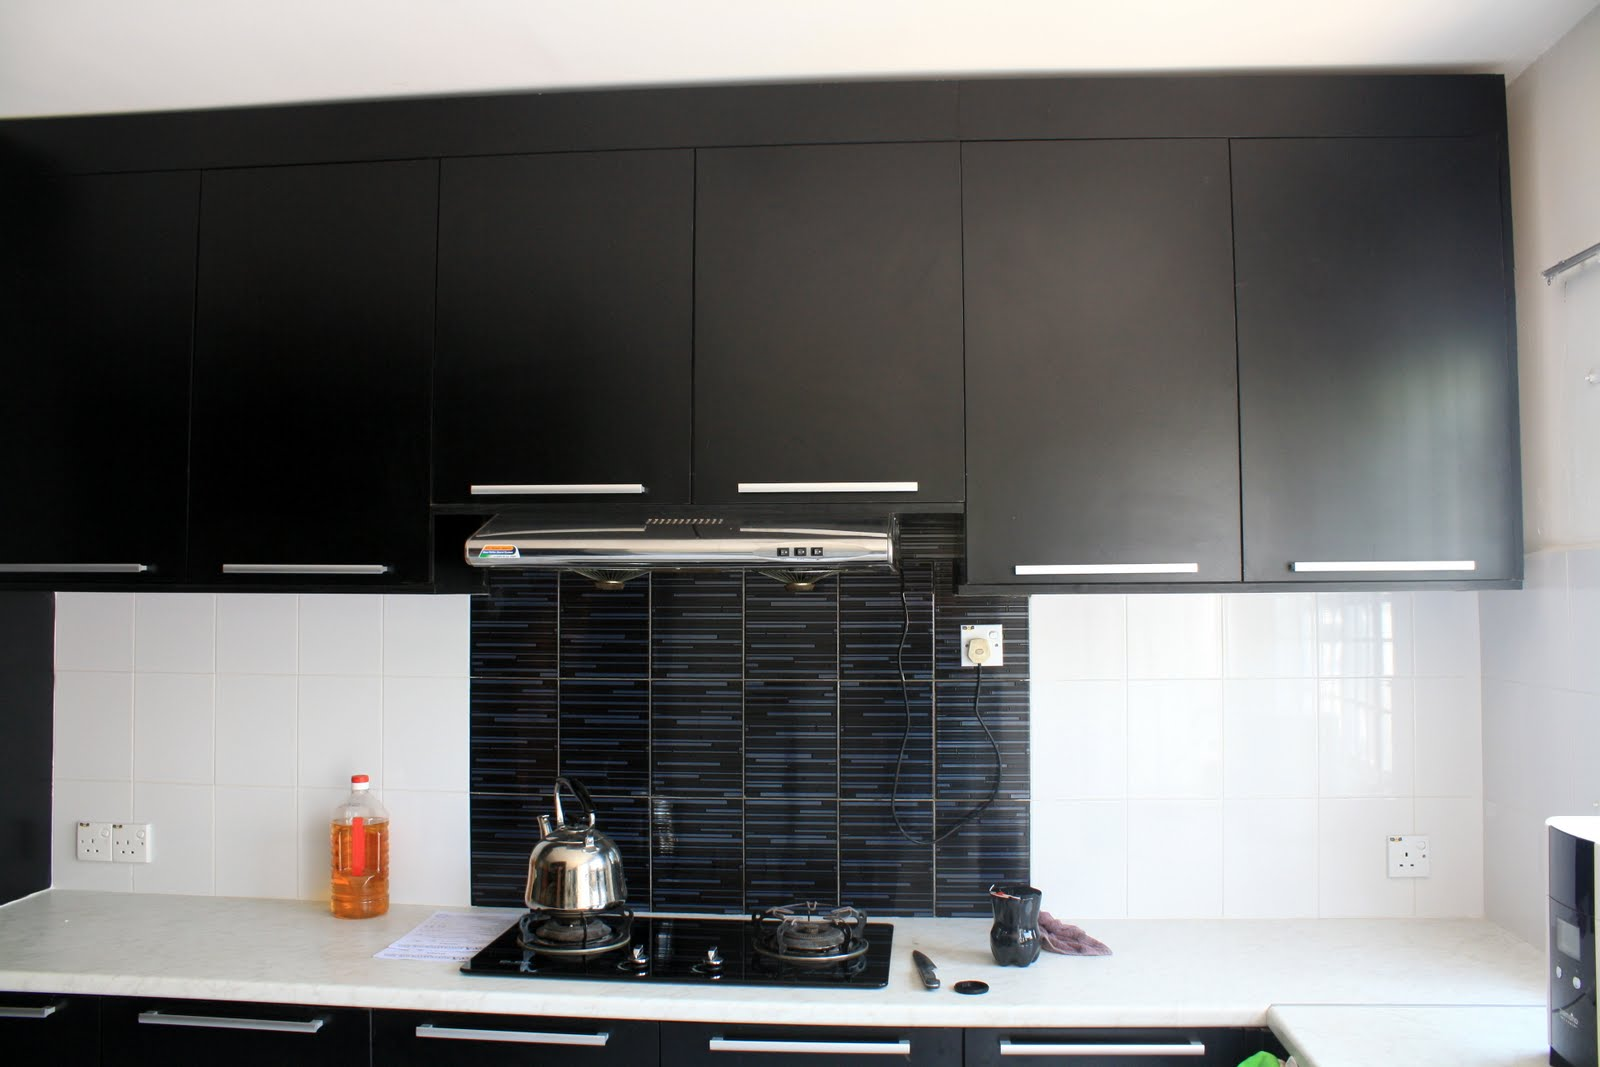 How Much Does It Cost To Reface Kitchen Cabinets Metal For Sale